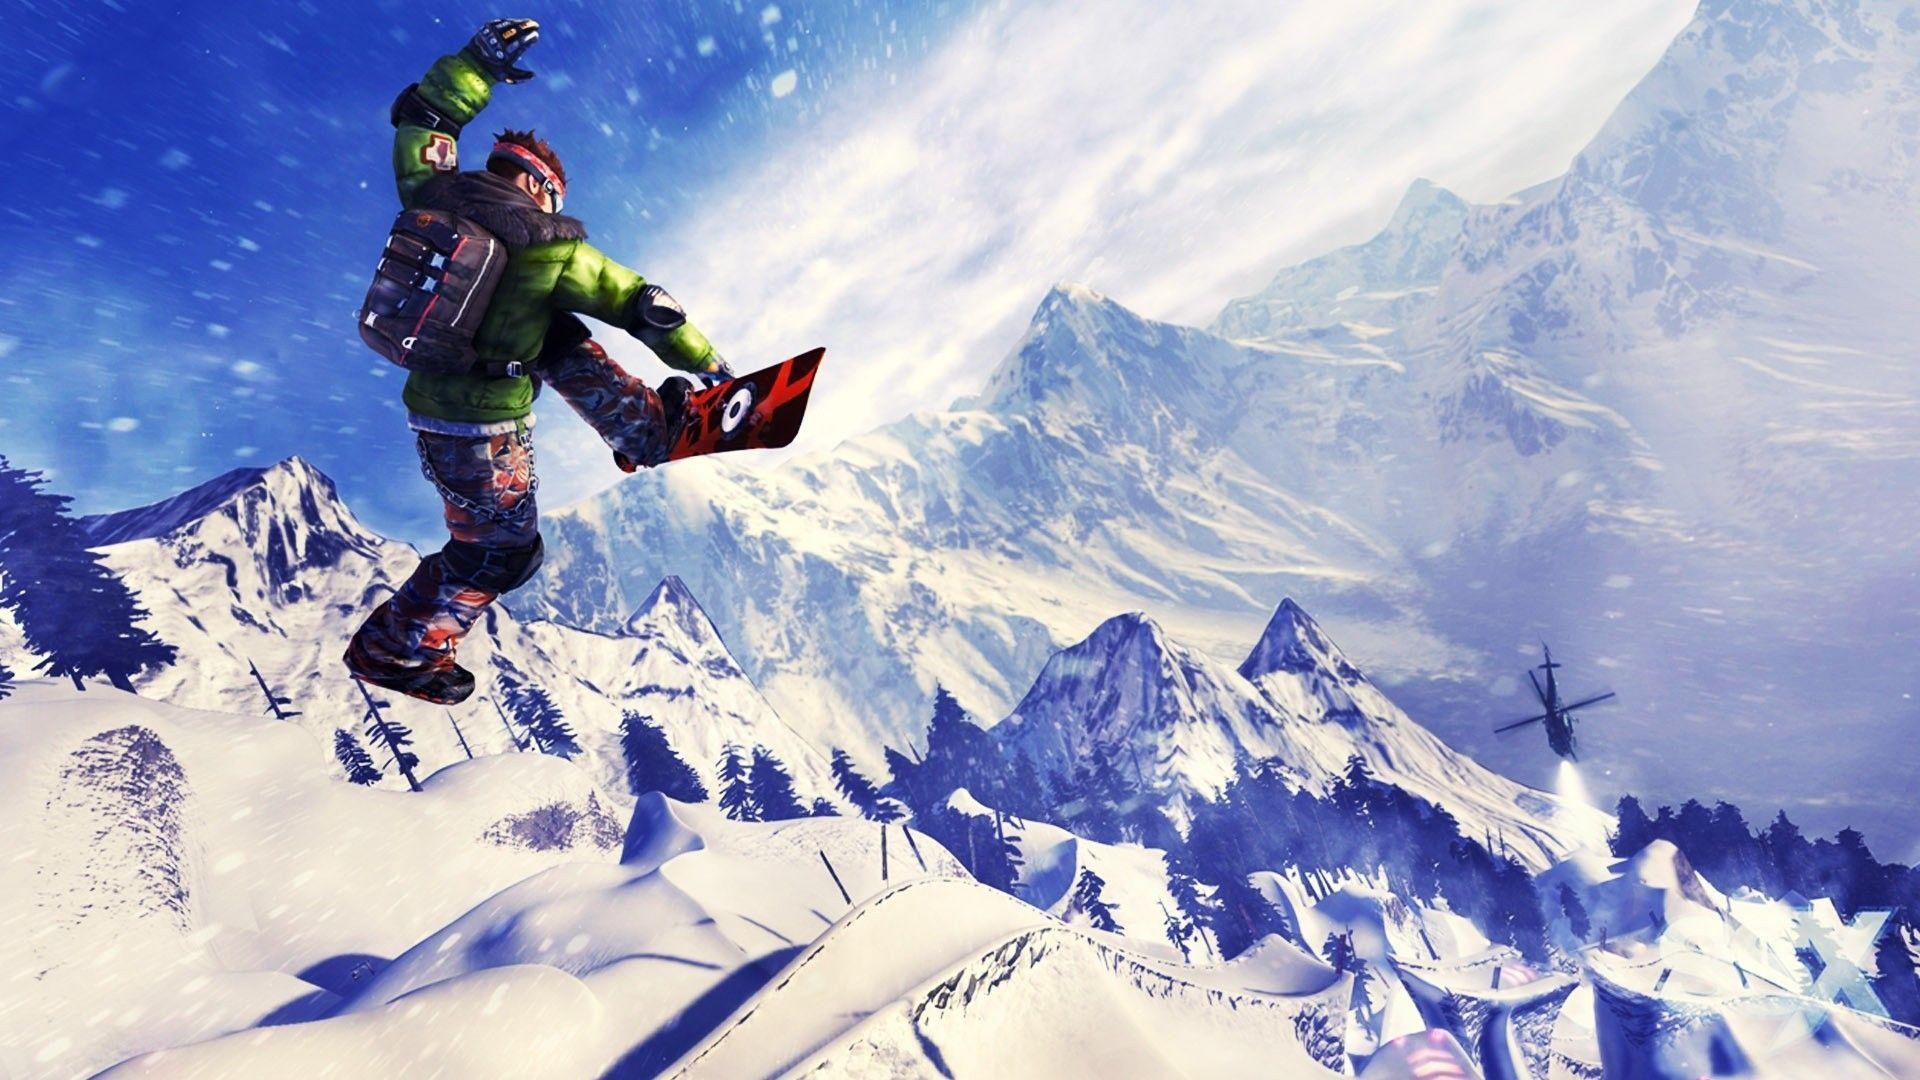 snowboard outdoor wallpaper desktop - photo #2